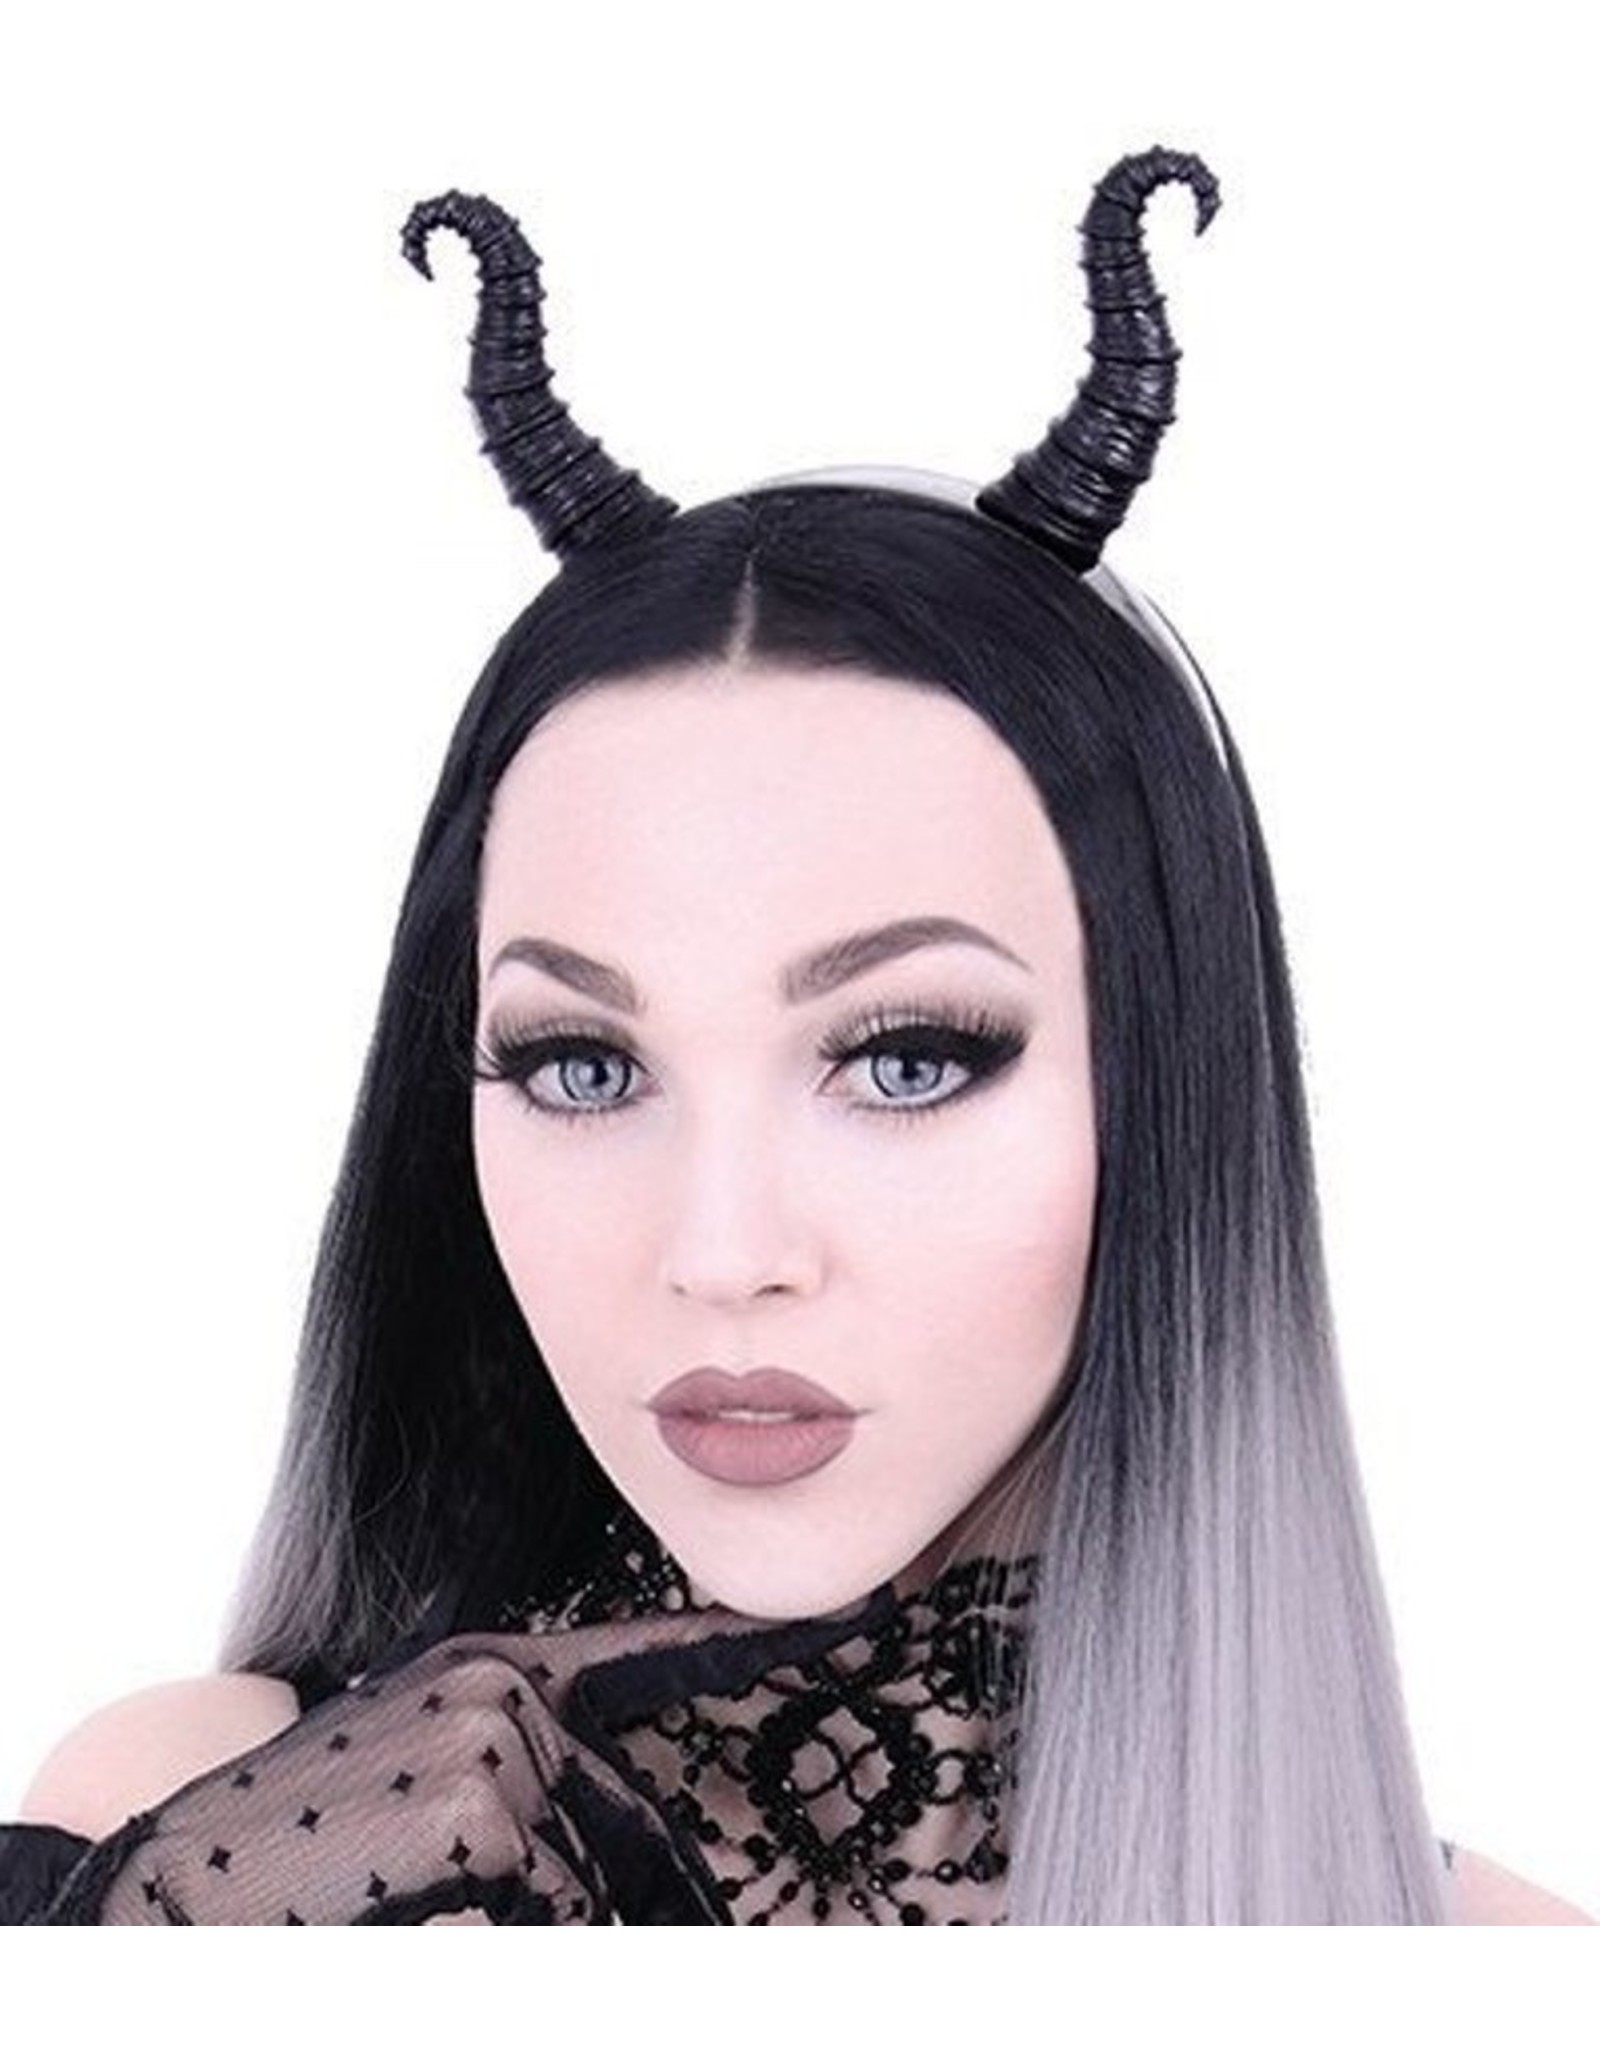 Restyle Gothic and Steampunk accessories - Maleficent Horns Gothic and Fantasy headband